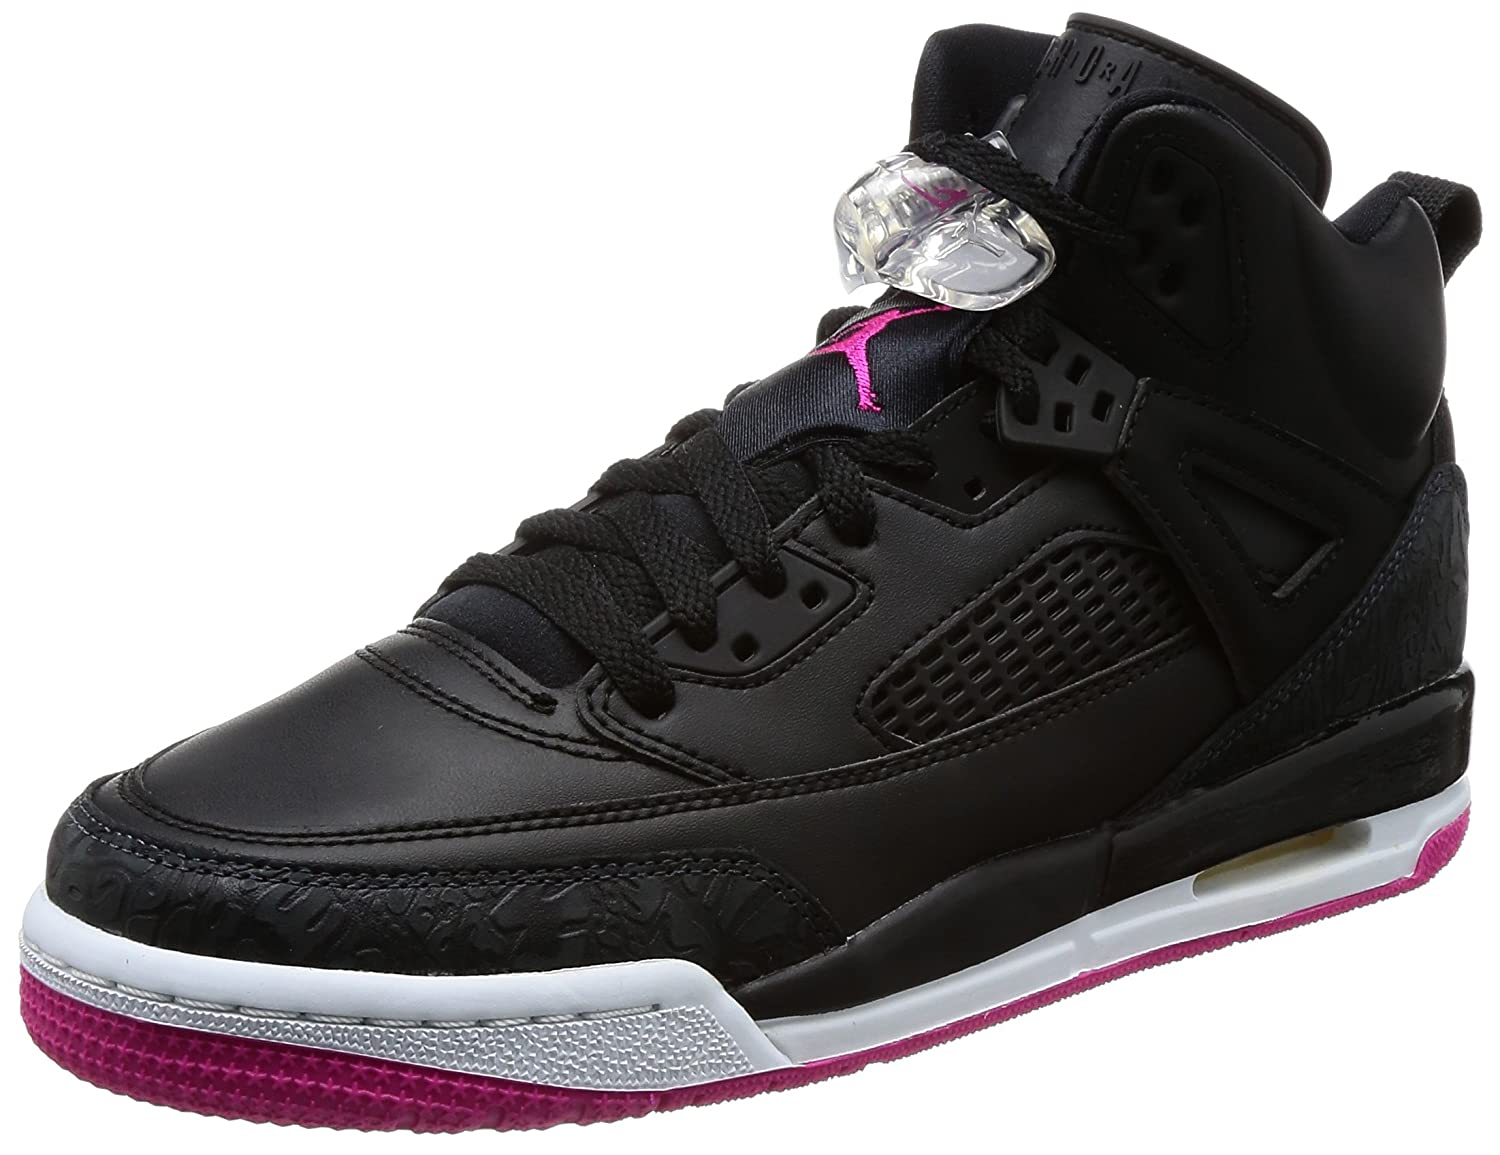 535712-029 GRADE SCHOOL SPIZIKE GG JORDAN BLACK DEADLY PINK ANTHRACITE